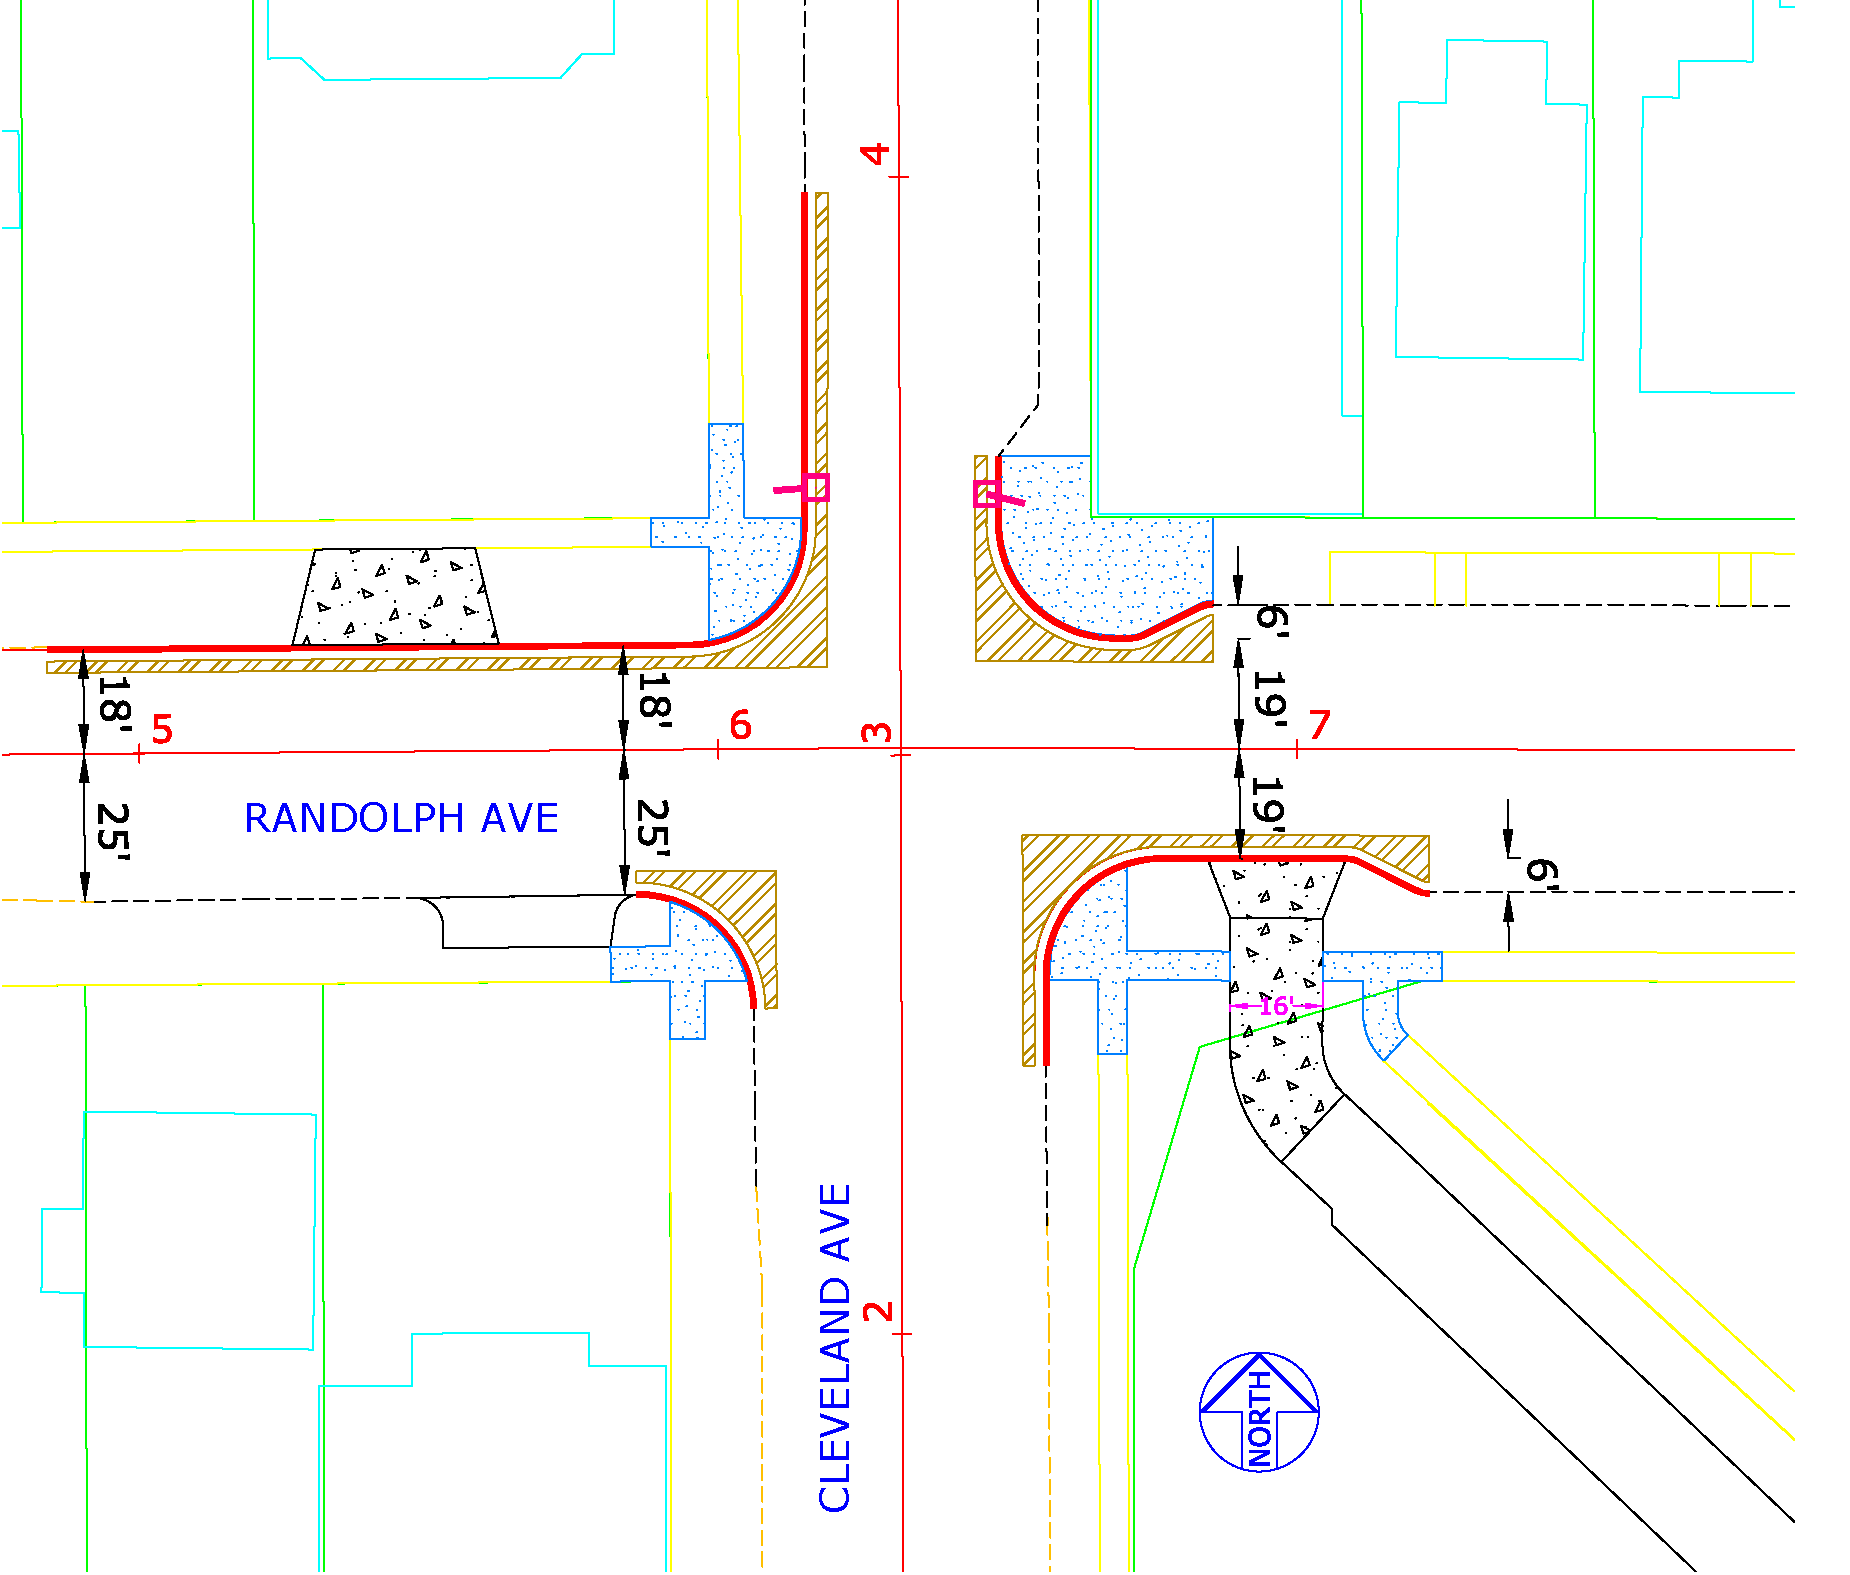 PWSDC Cleveland and Randolph Intersection Map Cropped.png